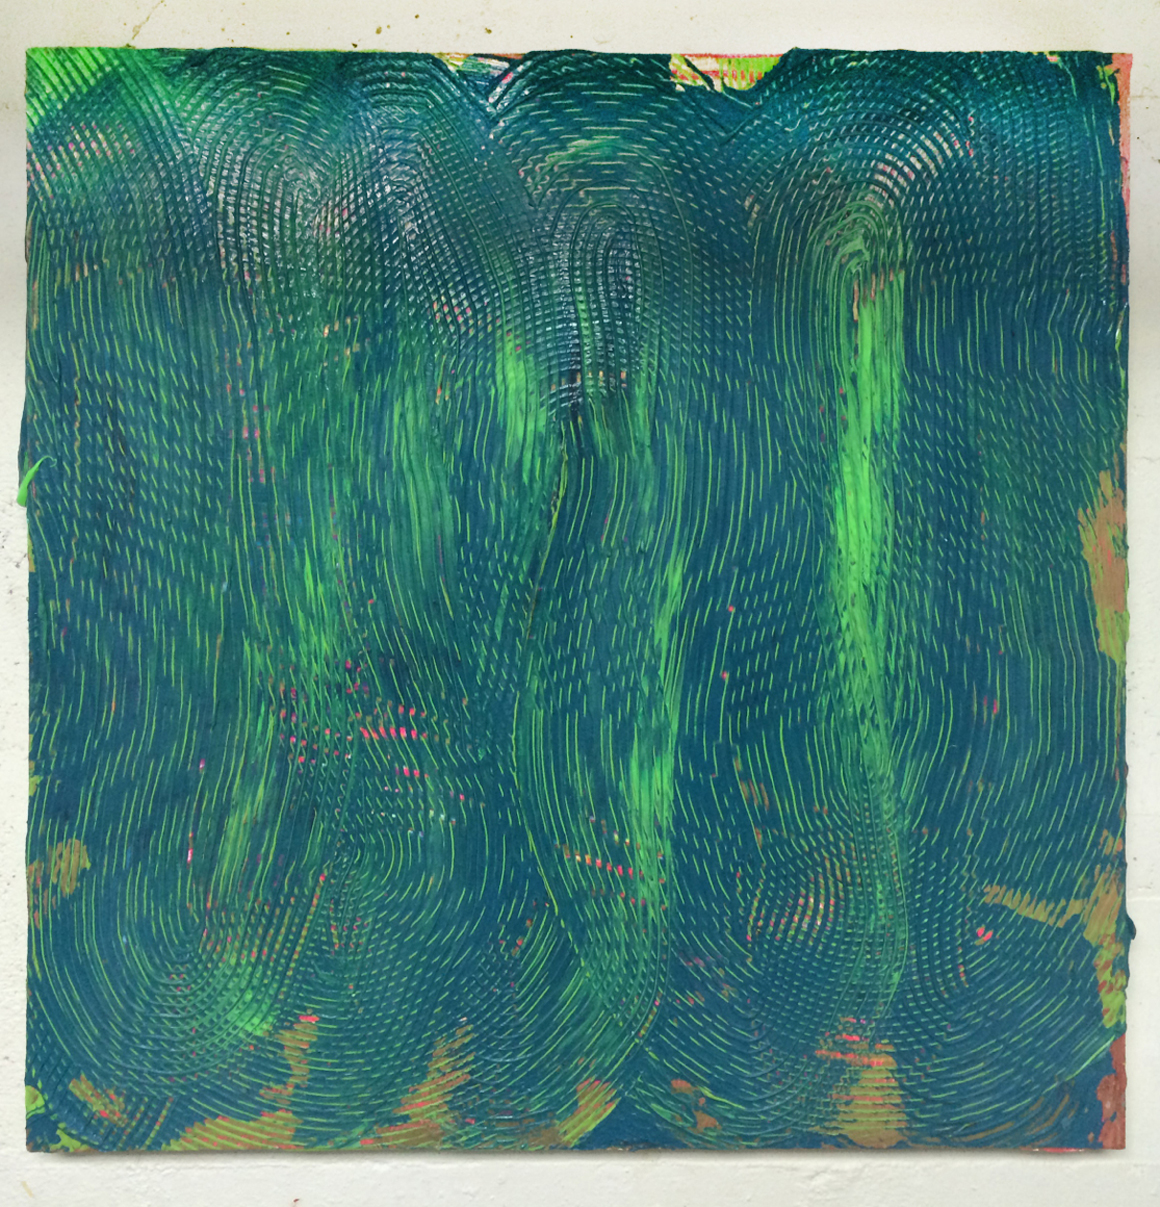 "<p><span class=""name"">Adam Bateman</span><br><em>Blue and Green</em><span class='media'>acrylic and spray paint on panel</span>24 x 24 in  (61 x 61 cm)<br>2014<br><a class='inquire' href='mailto:info@gildargallery.com?subject=Artwork Inquiry ABAT0017&body=I am interested in finding out more about Blue and Green by Adam Bateman'>Inquire</a></p>"